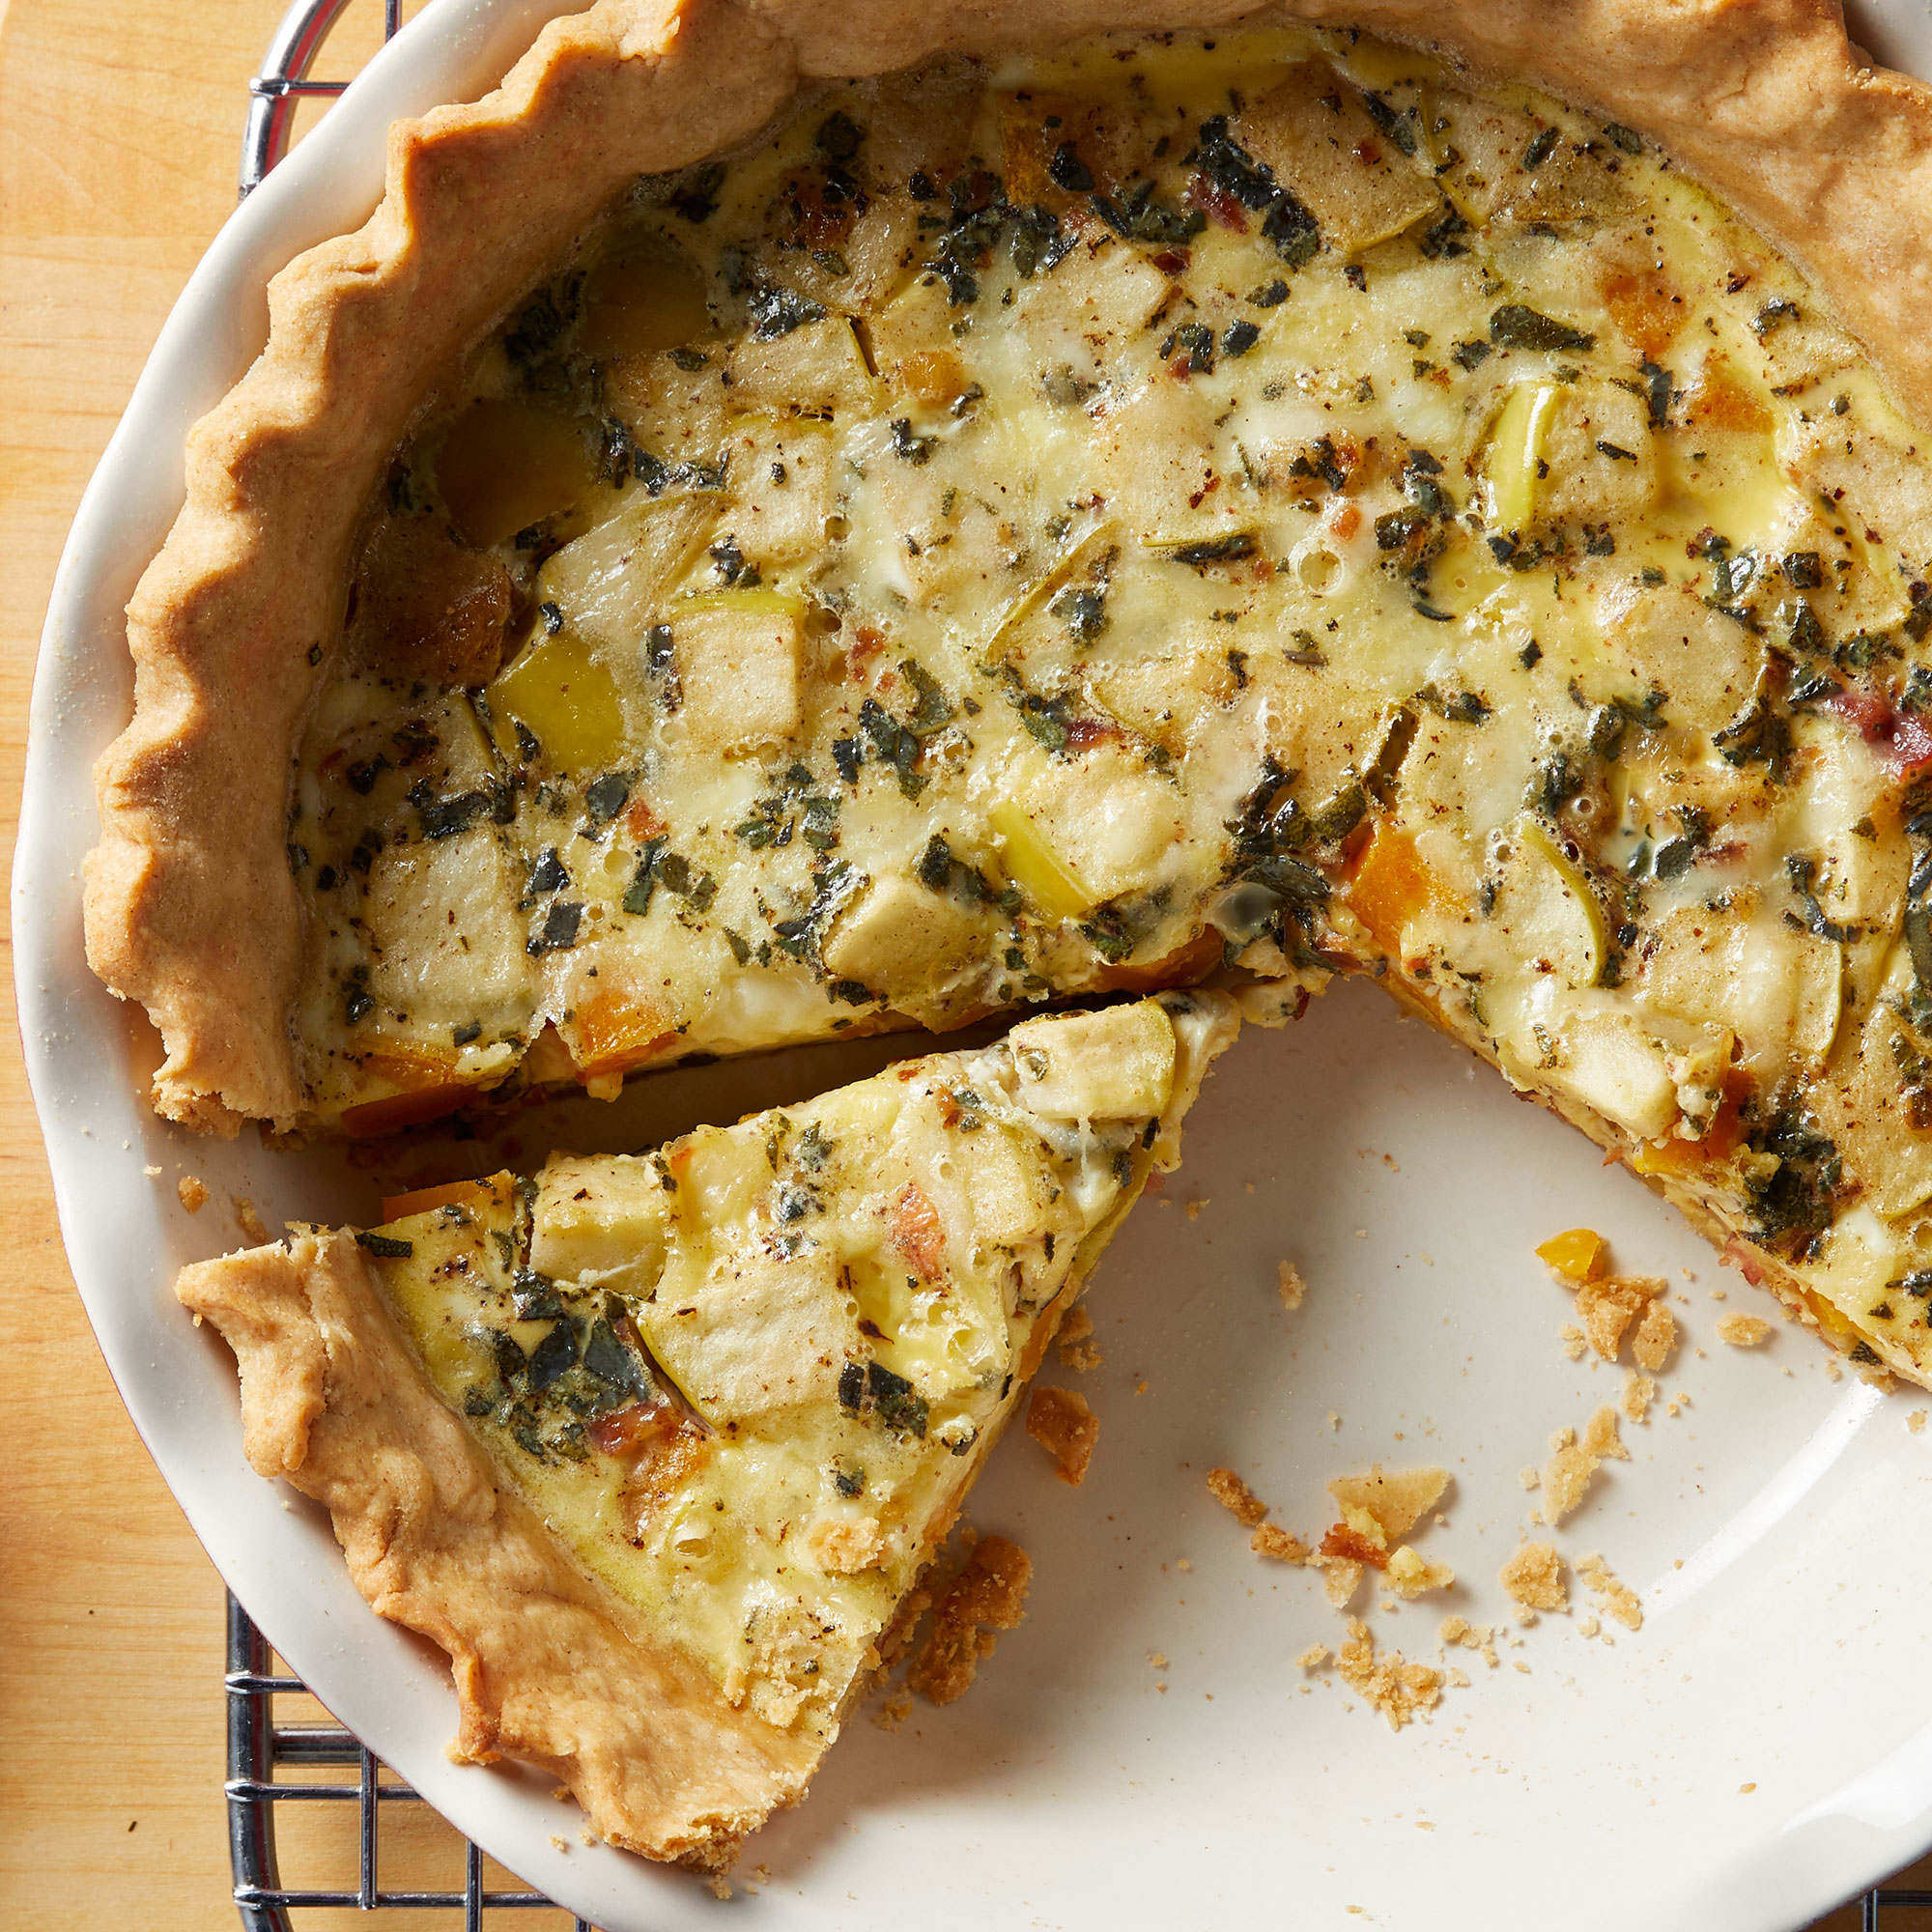 Apple, Bacon & Butternut Squash Quiche